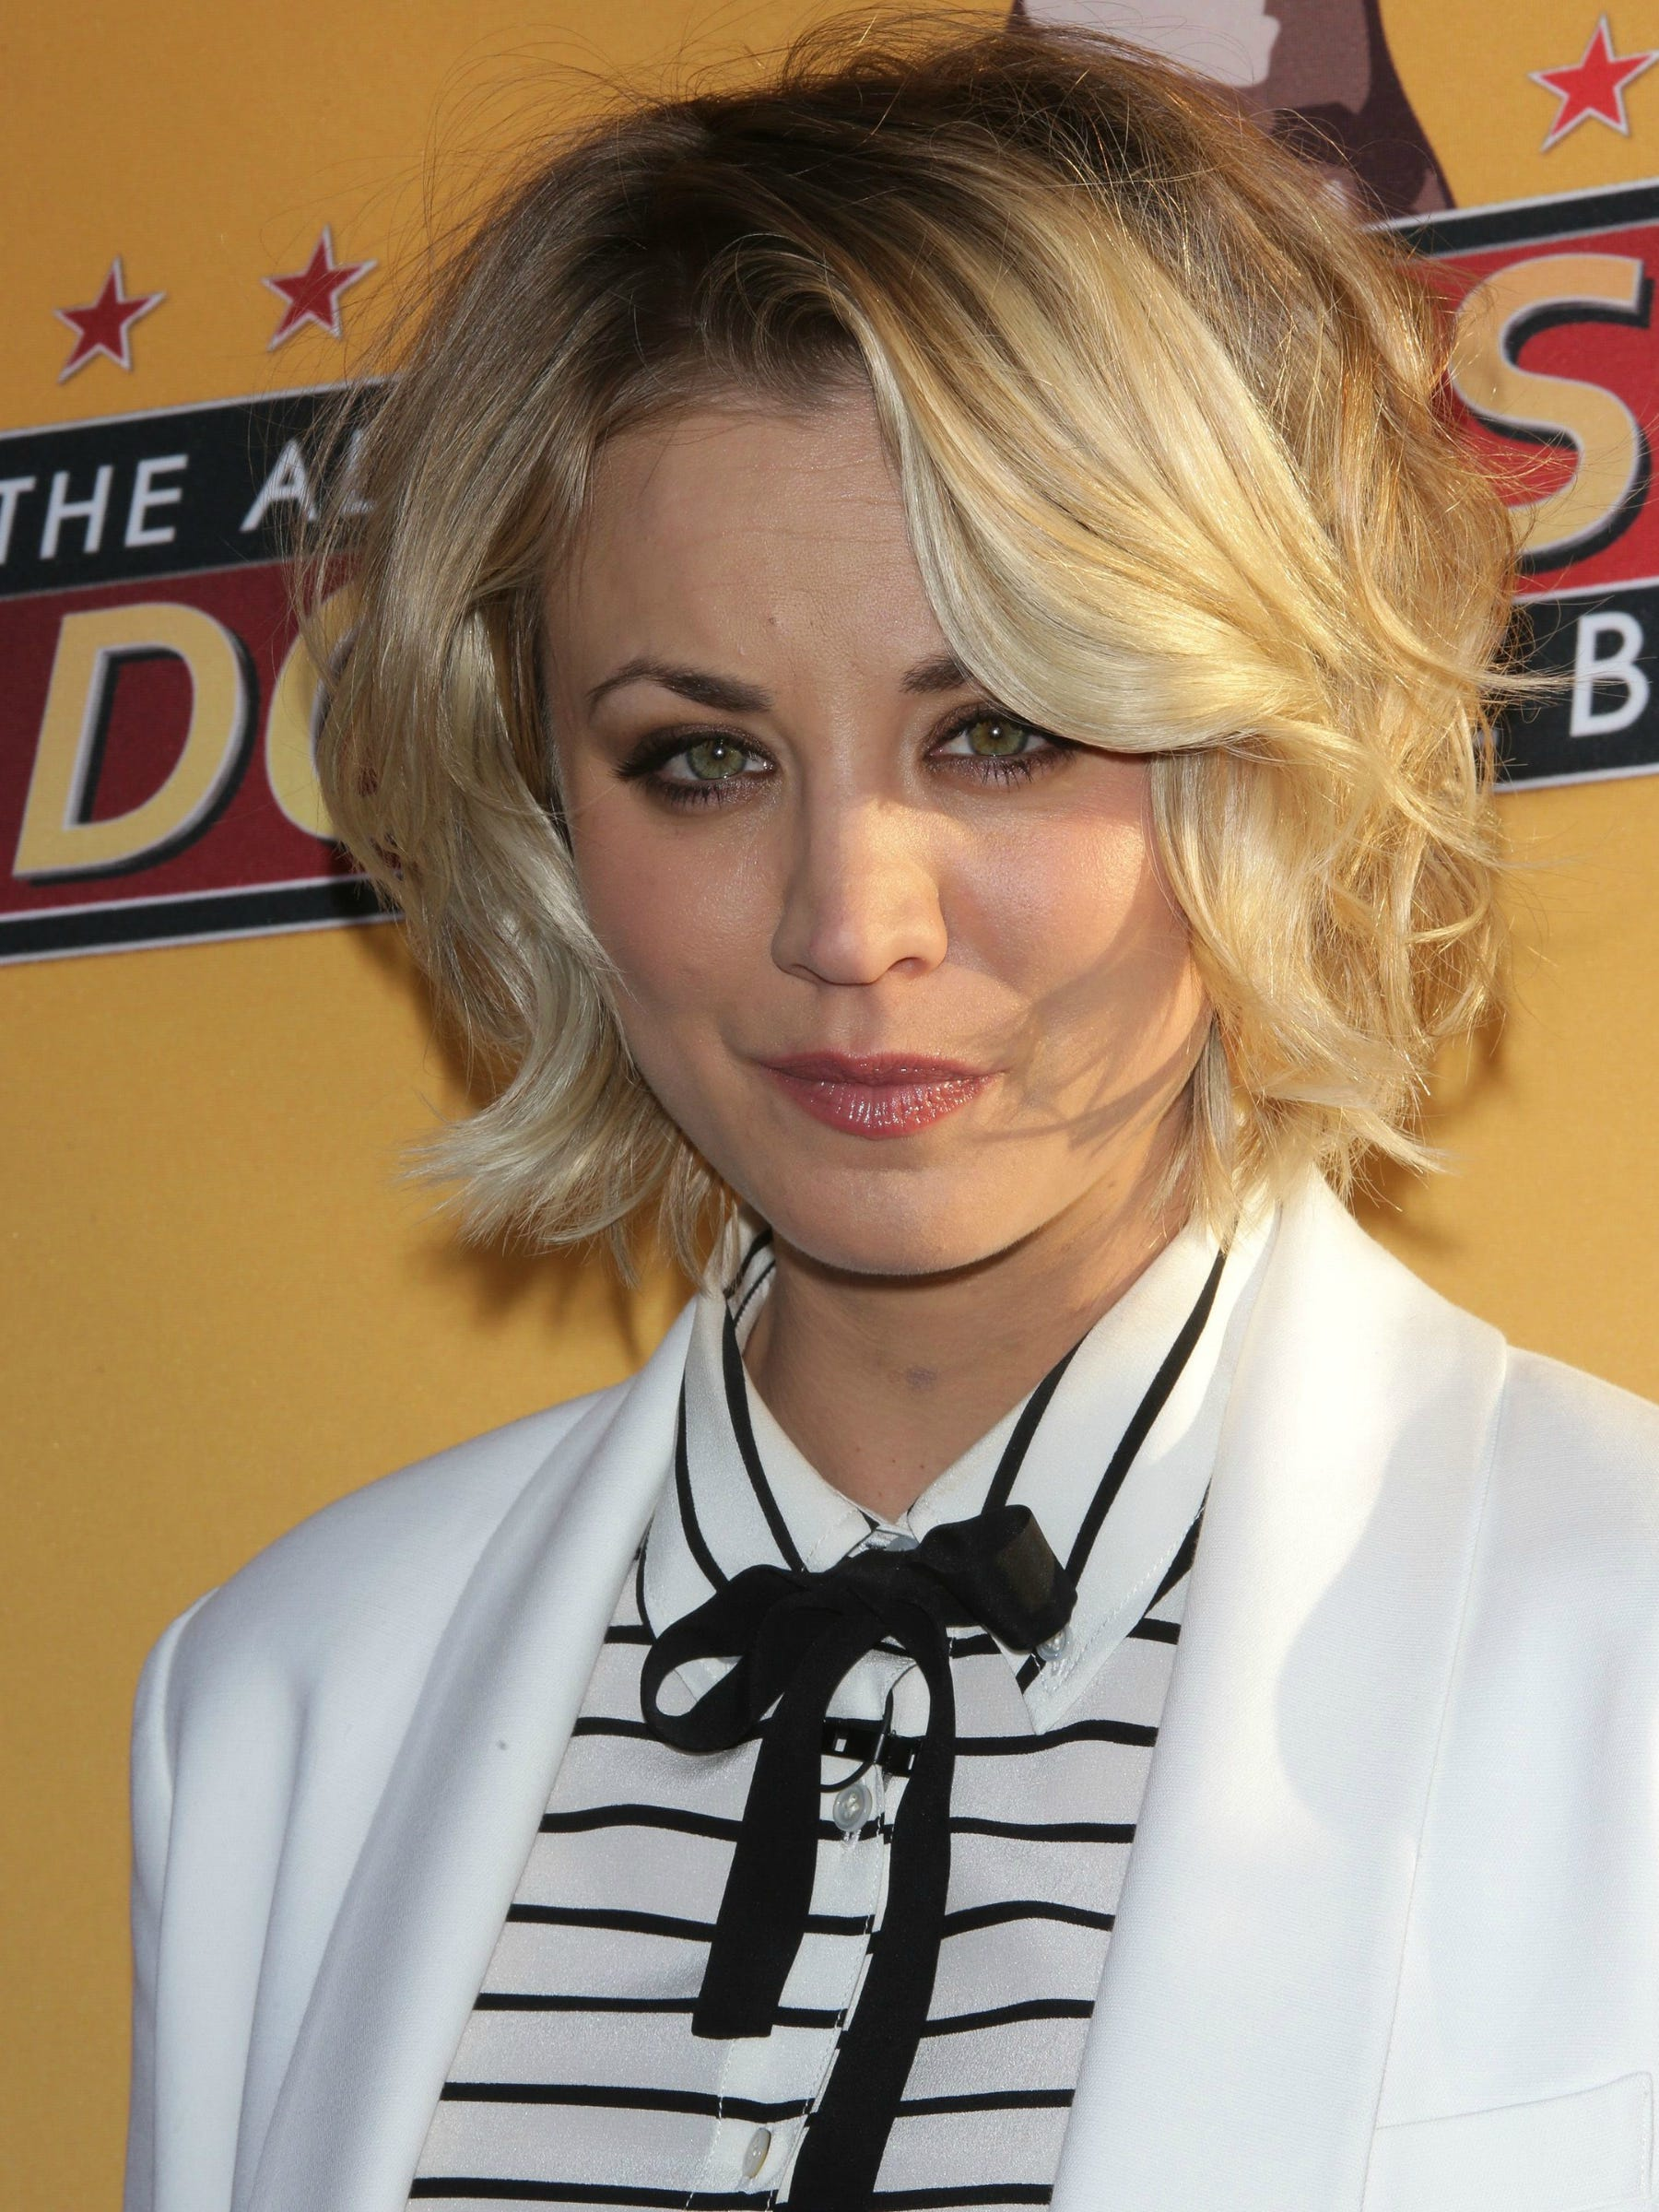 Kaley Cuoco Tattoo Wedding Date Moth